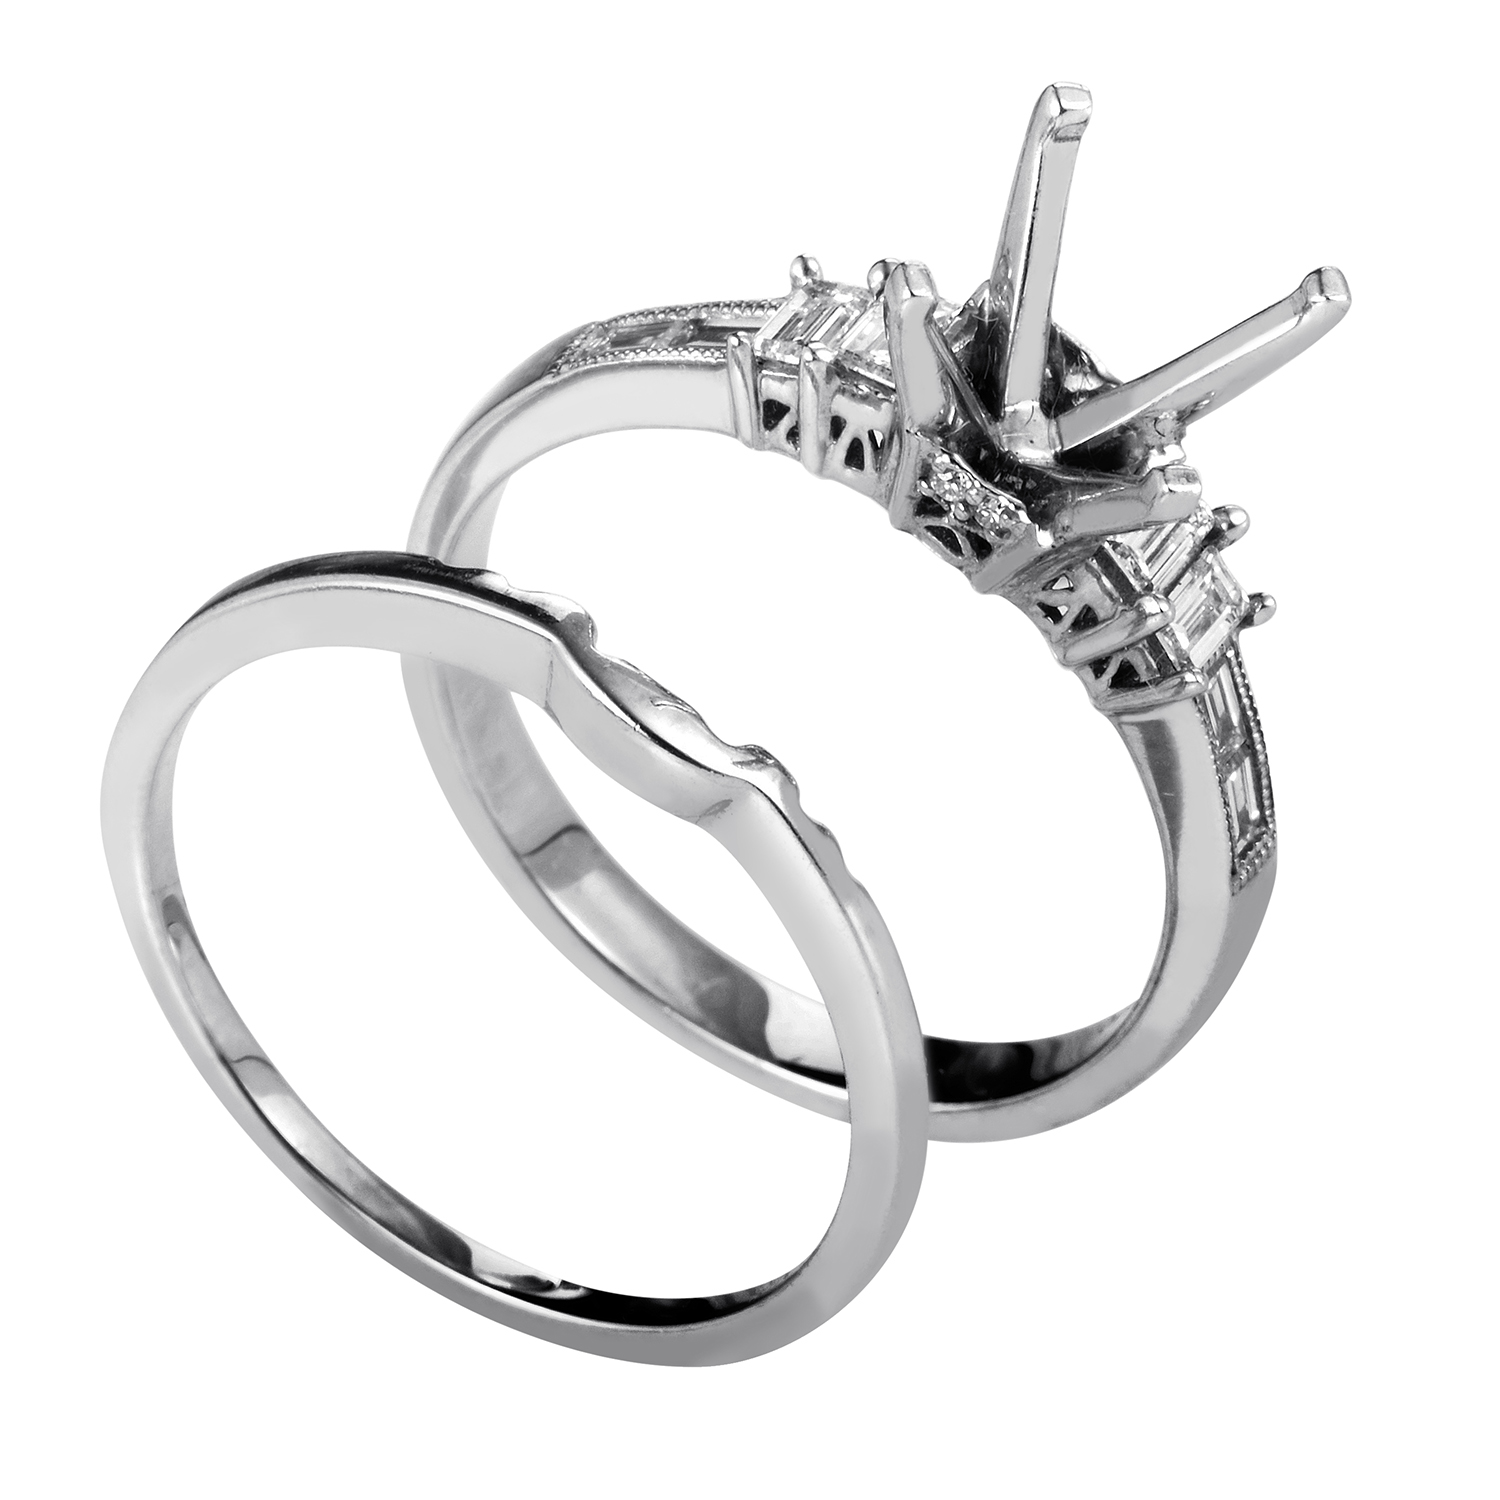 Women's 14K White Gold & Diamond Mounting Bridal Set SM-051634